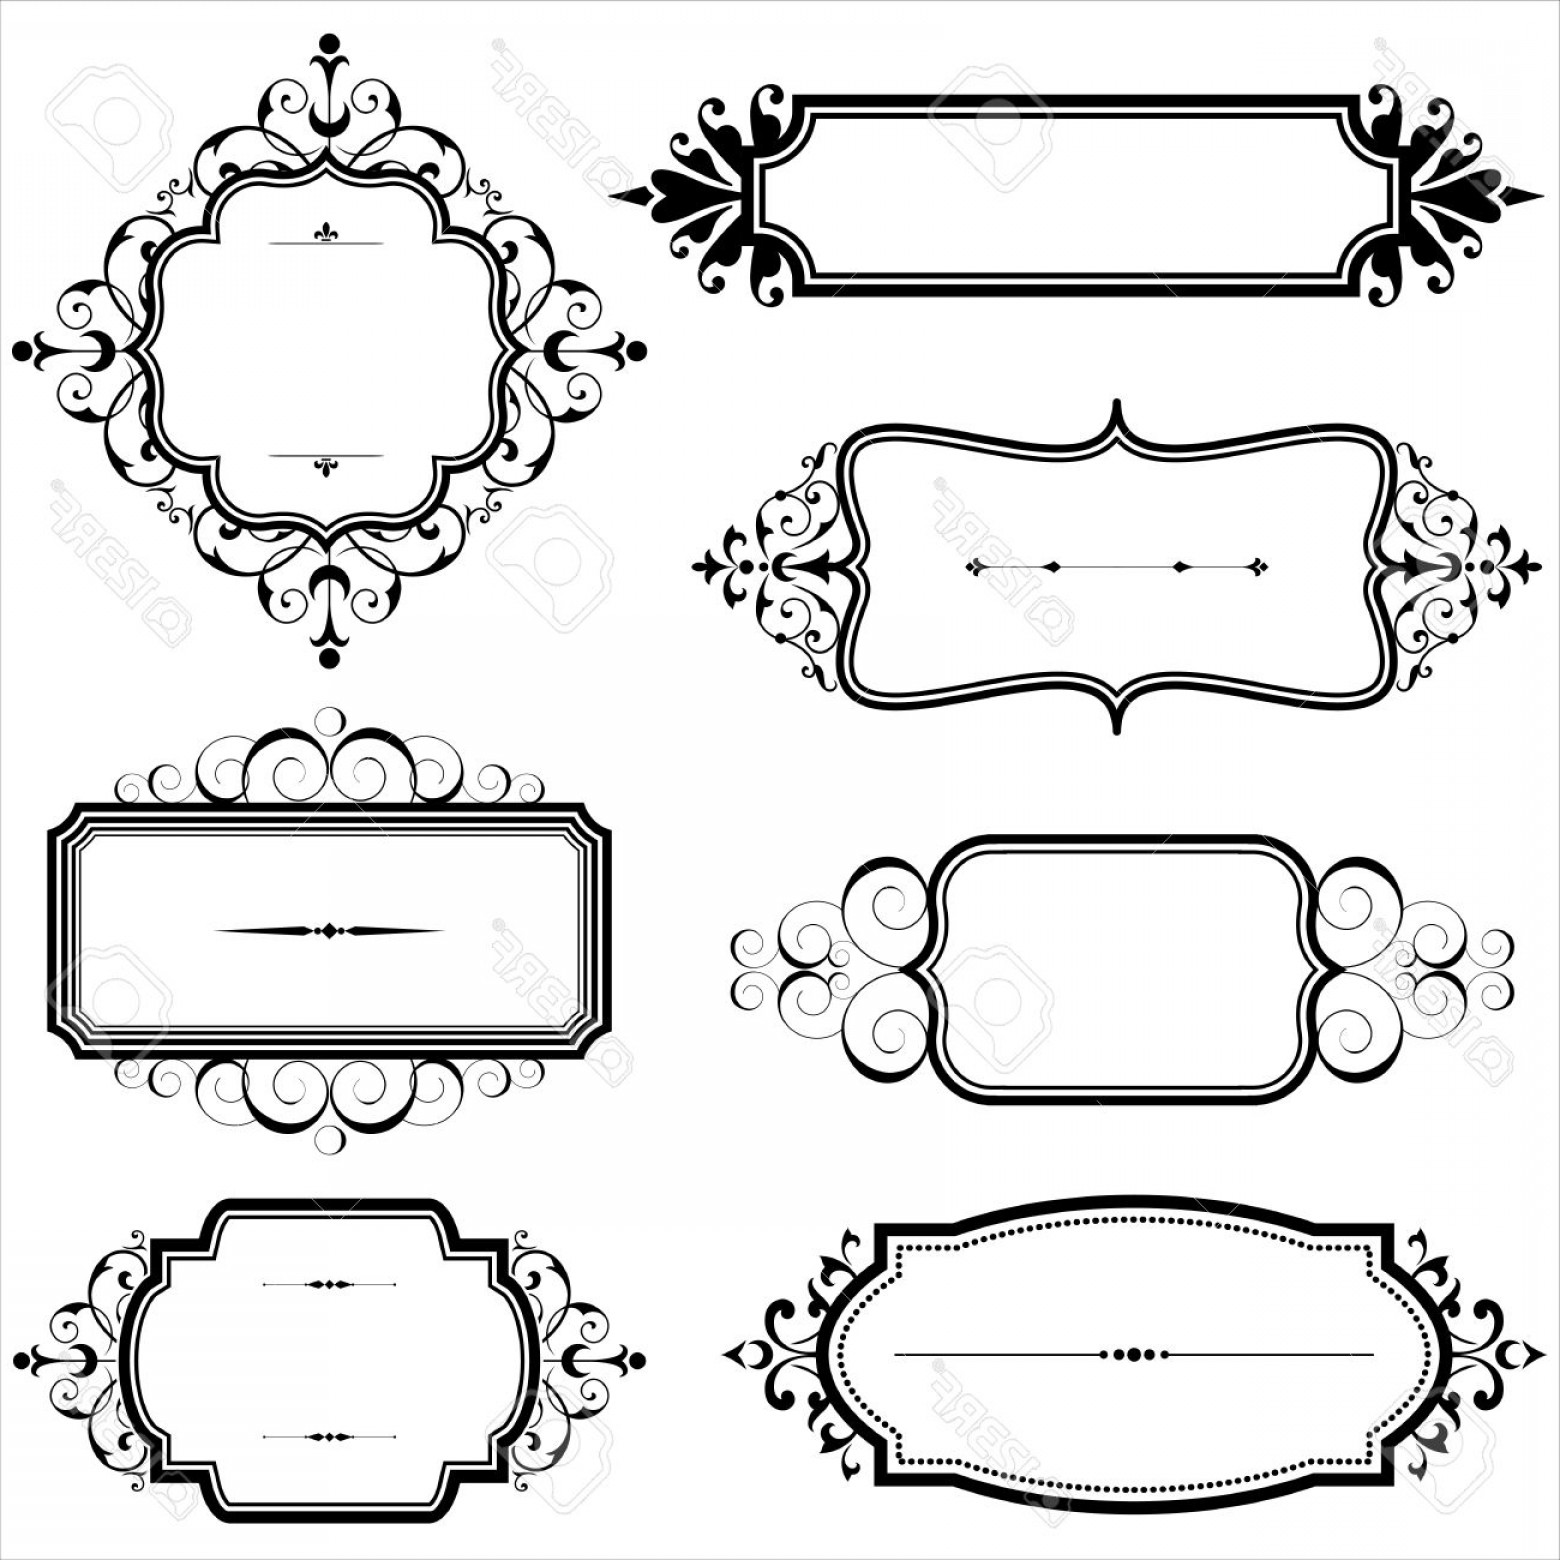 Vector Ornate Vintage Frame Blank: Photostock Vector Vintage Frames With Scrolls Set Of Vintage Frames With Scroll Elements Each Element Is Grouped Indiv